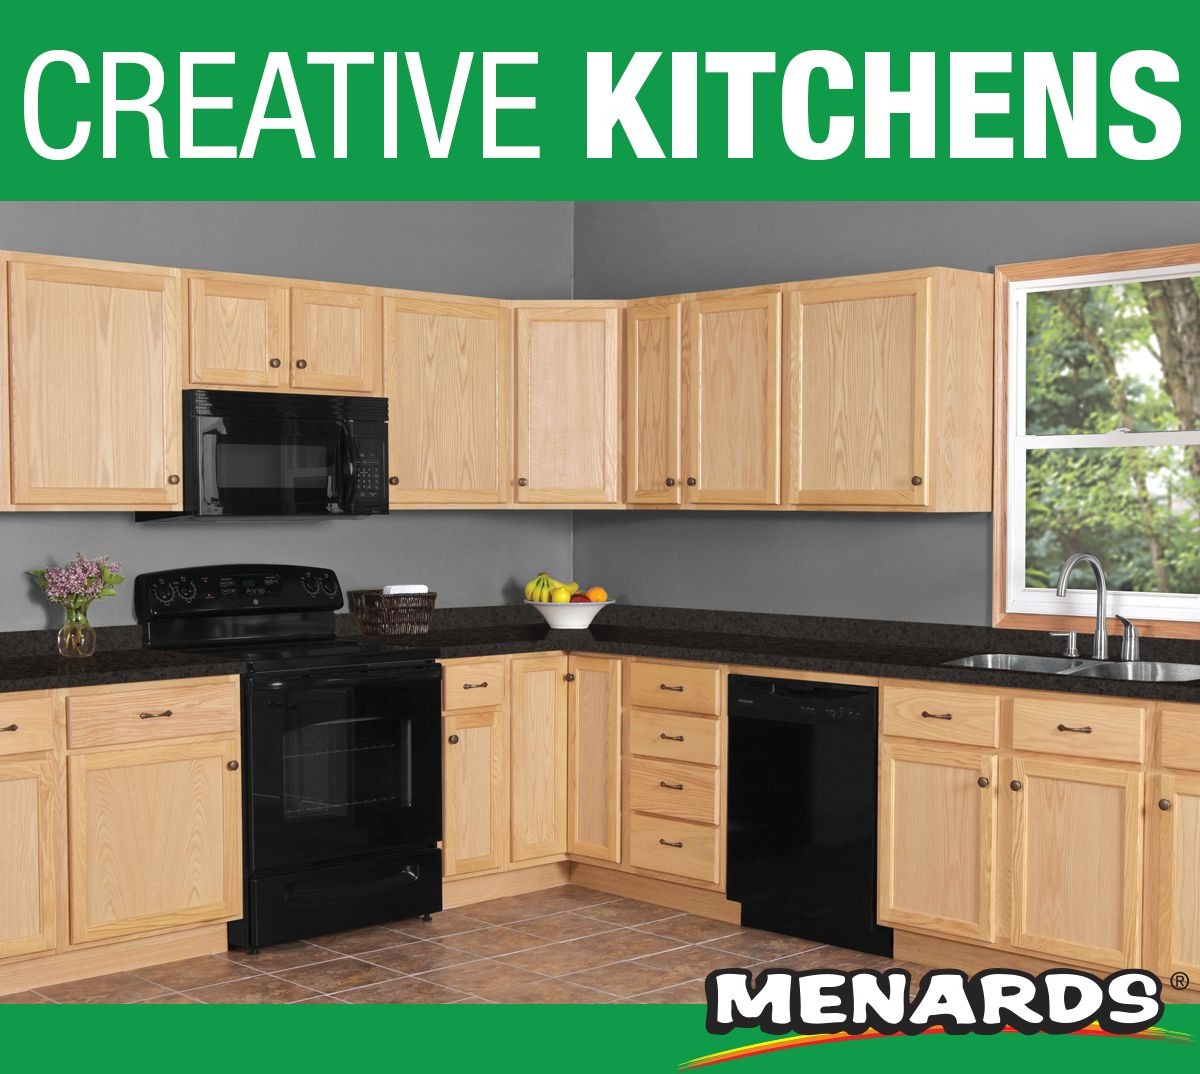 Quality One Woodwork Provides You With A Full Line Of Ready To Finish Cabinets Using Industrial Grade Materials For High Quali Kitchen Cabinets Cabinet Kitchen